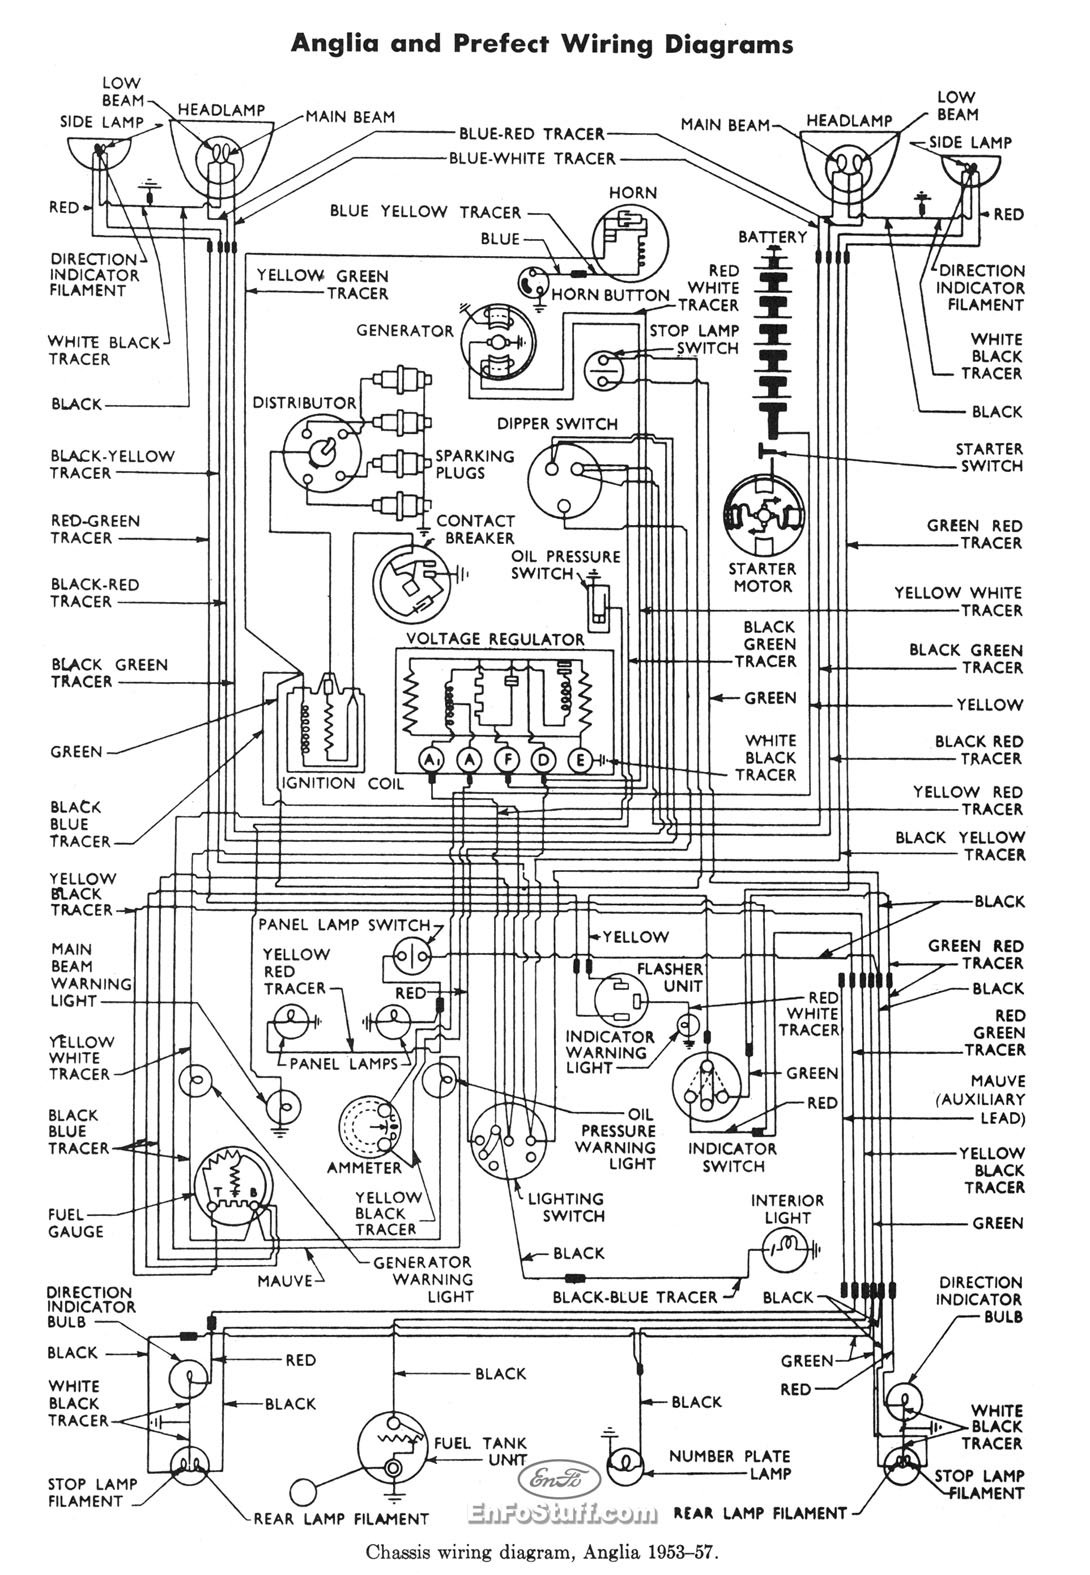 ford anglia 1953 57 wiring diagram wiring diagram for ford anglia 1953 57 ford wiring schematics at eliteediting.co